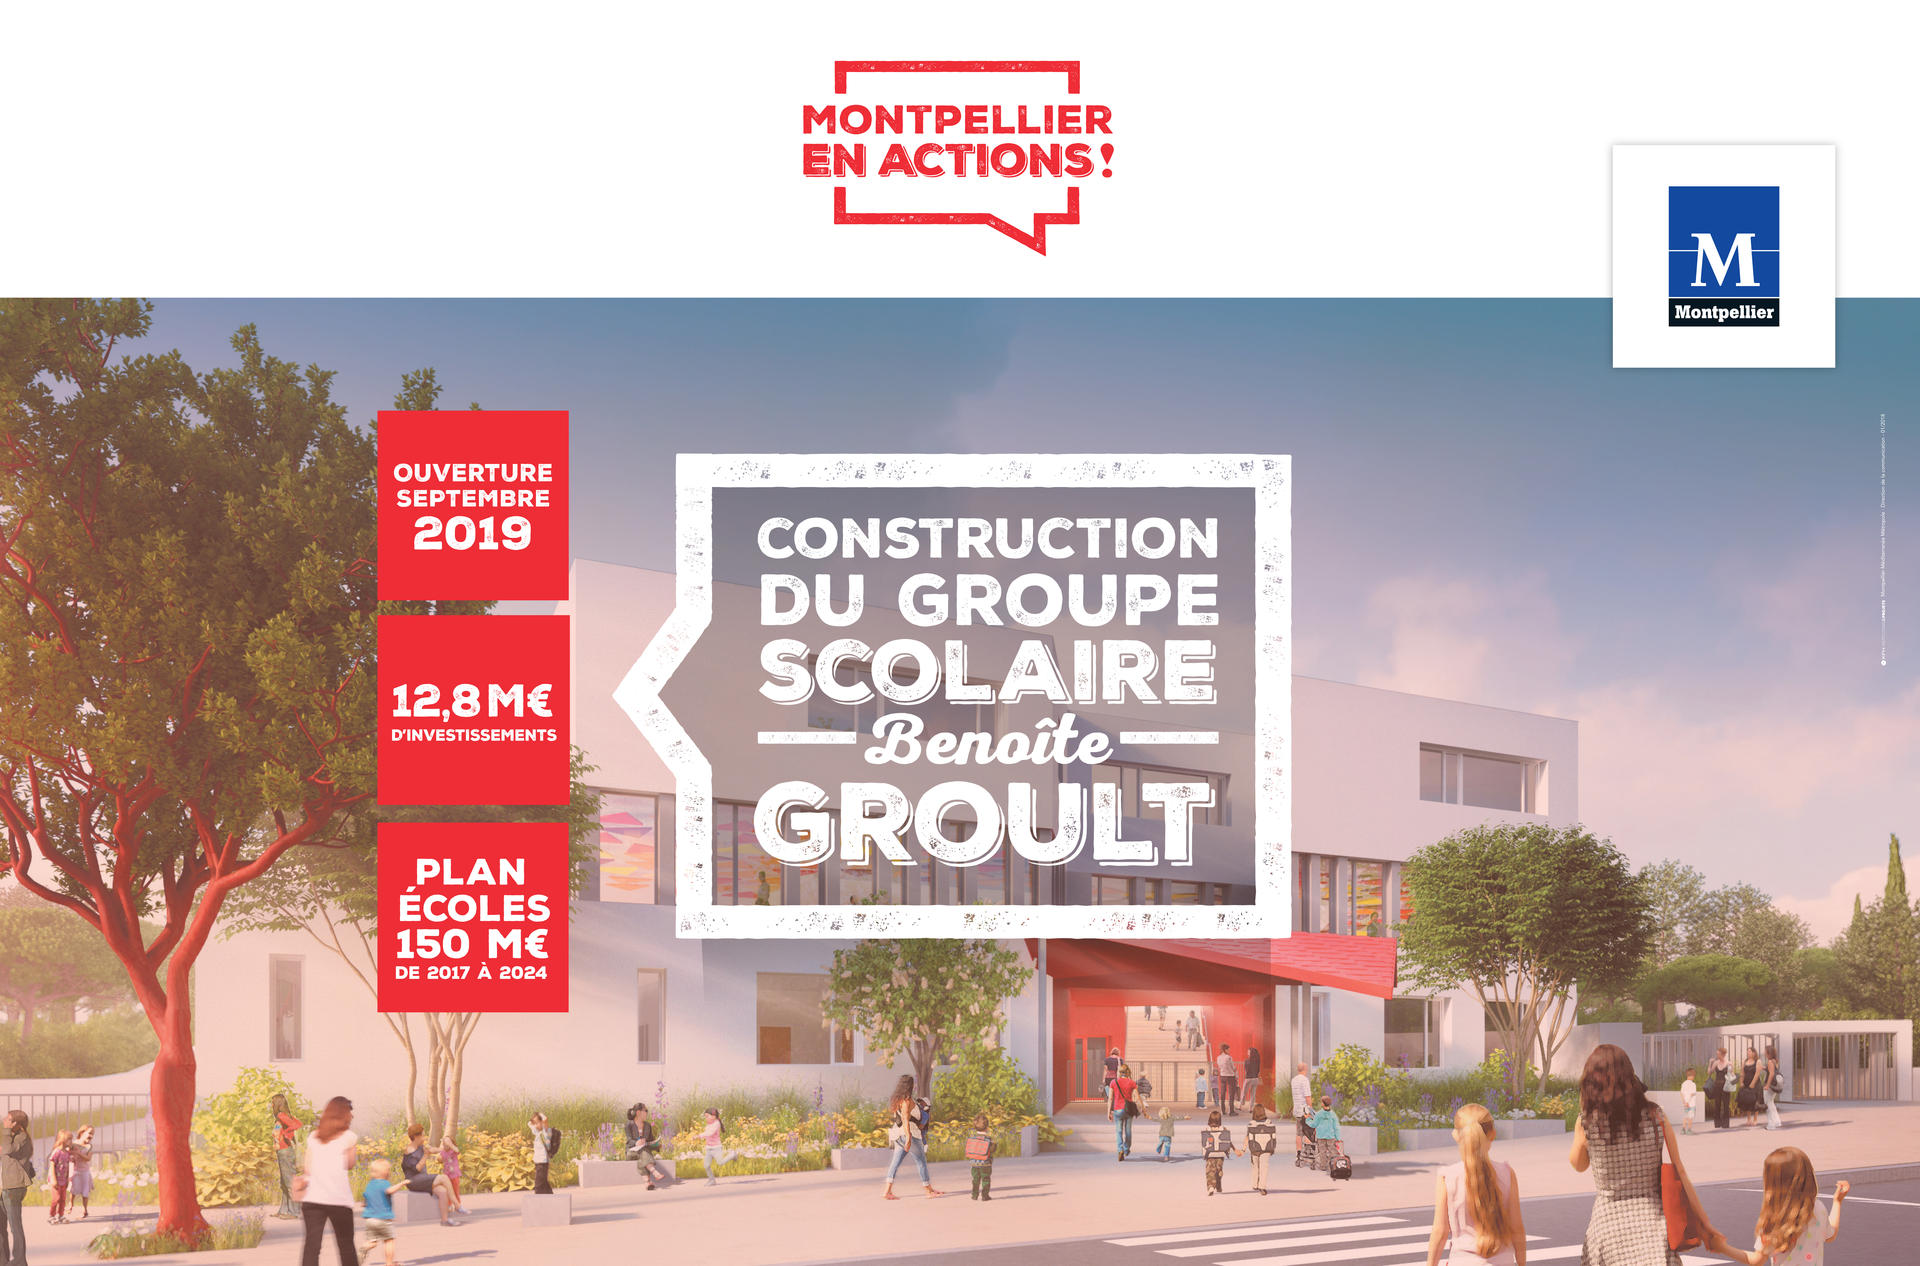 Groupe Scolaire Groult